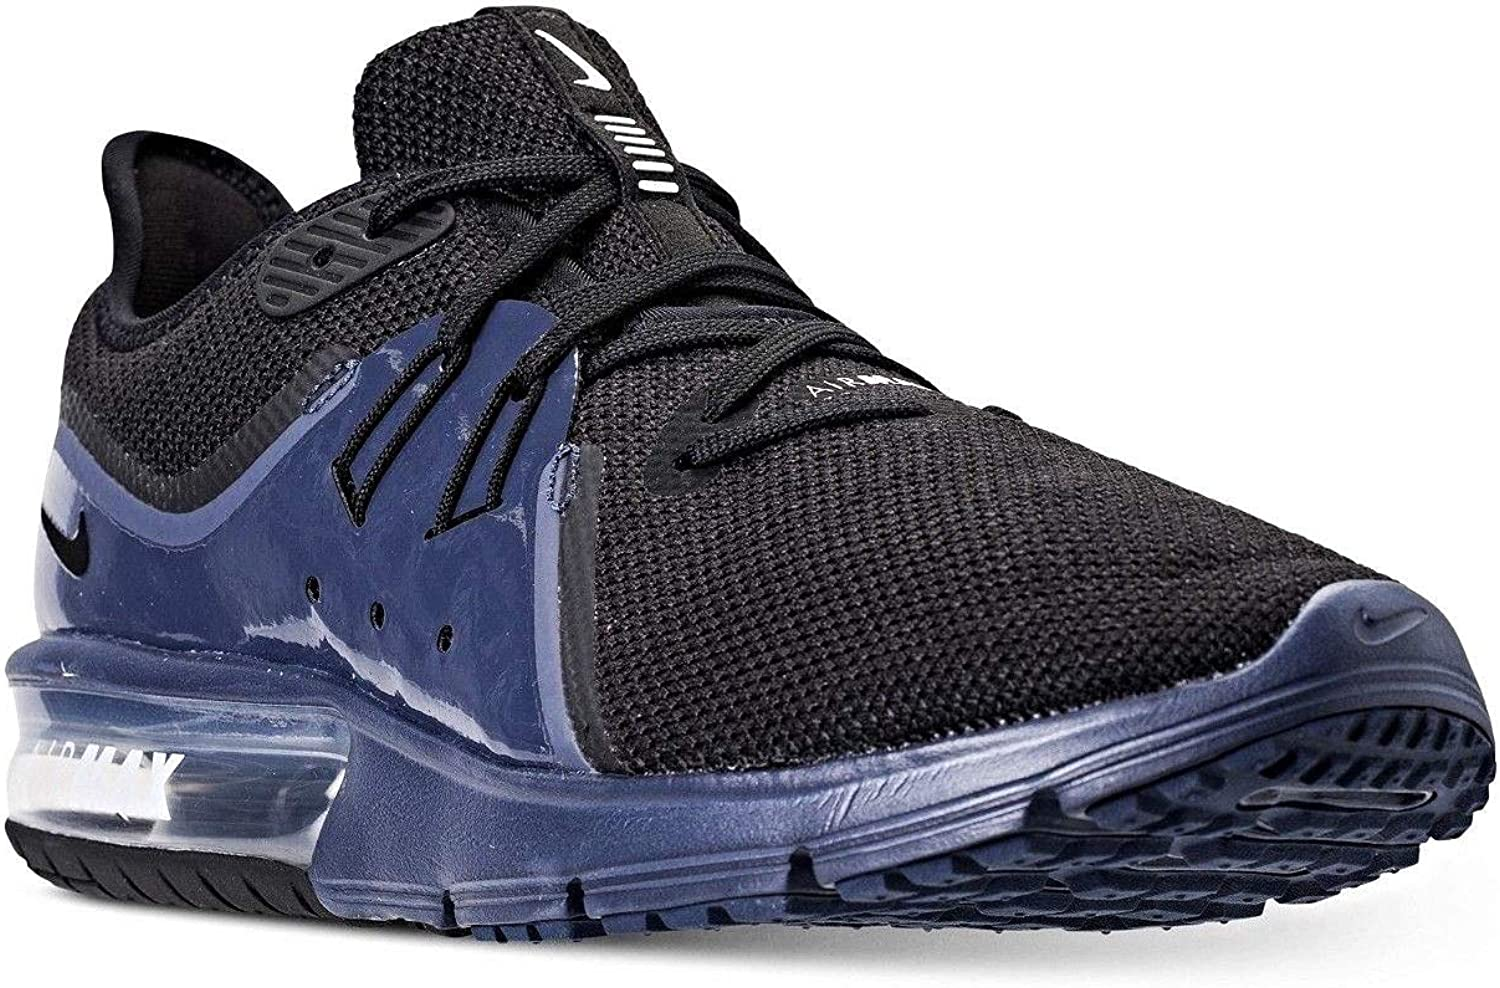 Nike Herren Air Max Sequent 3 S Fitnessschuhe